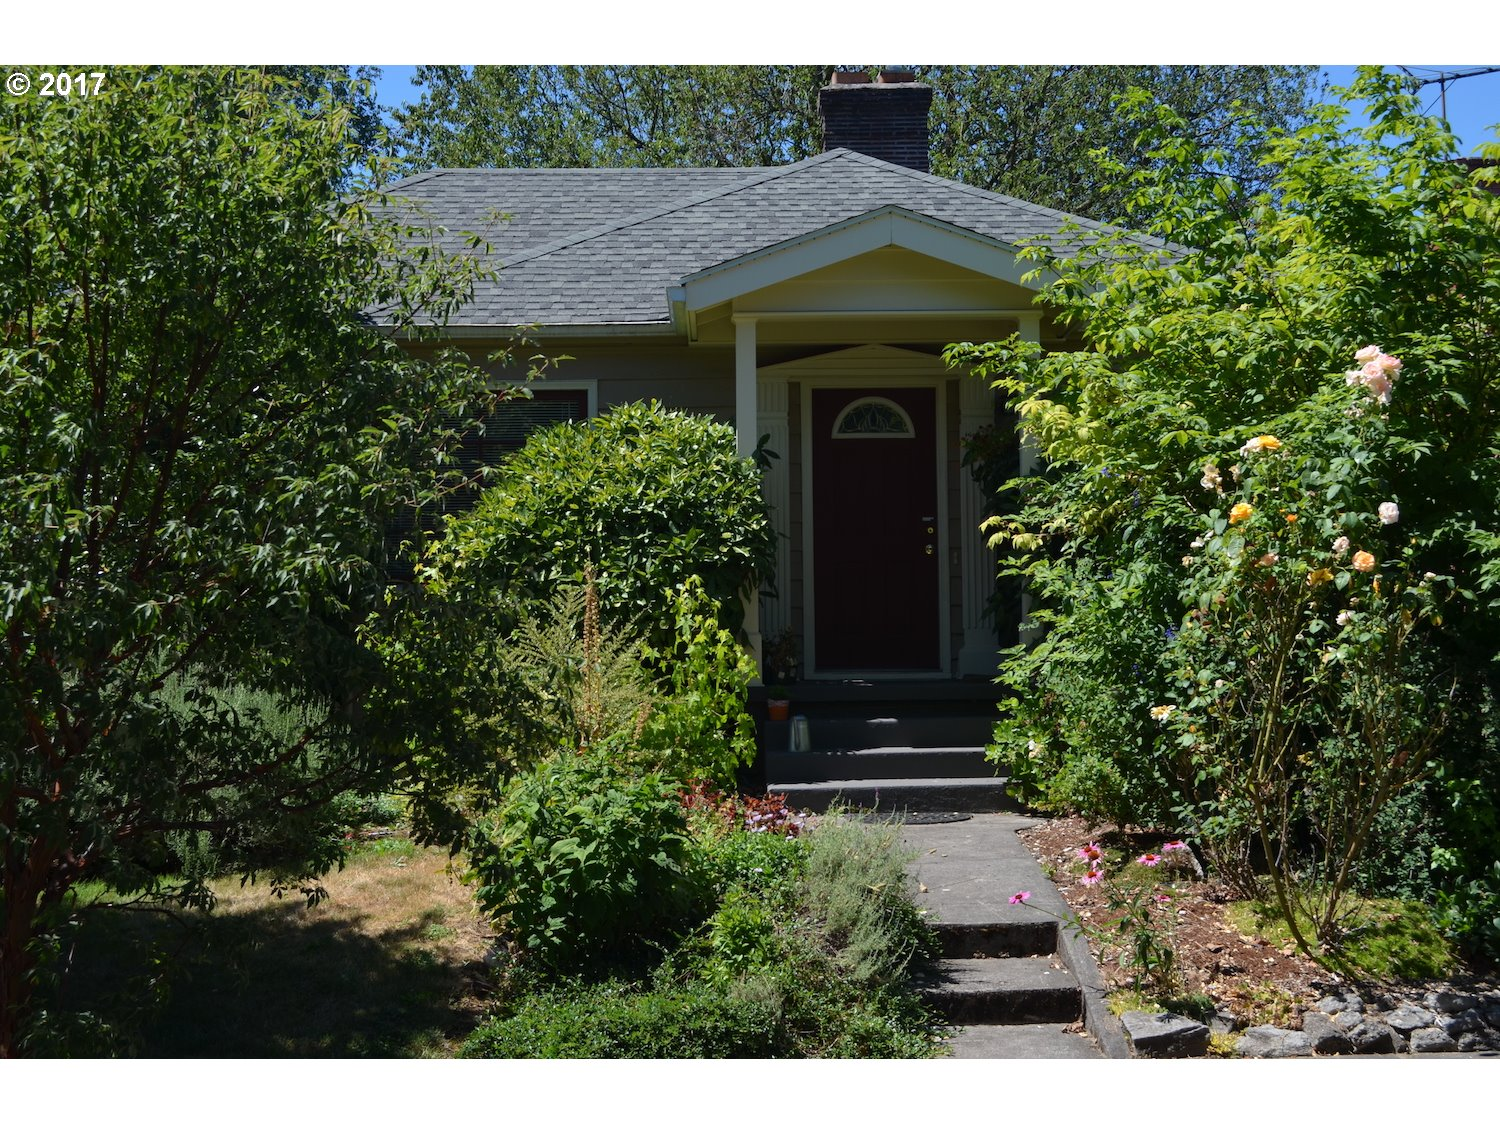 2 bdrm/1 bonus. Charming 1941 home w/wood floors, dining room, built-ins, fireplace, corner windows, retro kitchen w/ original chrome hardware, refurbished range. Basement w/ finished bonus room, family room, and extra storage. Lovely, fenced yard with deck and playhouse. Greenhouse, planting boxes, and watering system. Detached garage. Newer roof, gas furnace, windows, new repipe, oil tank done.